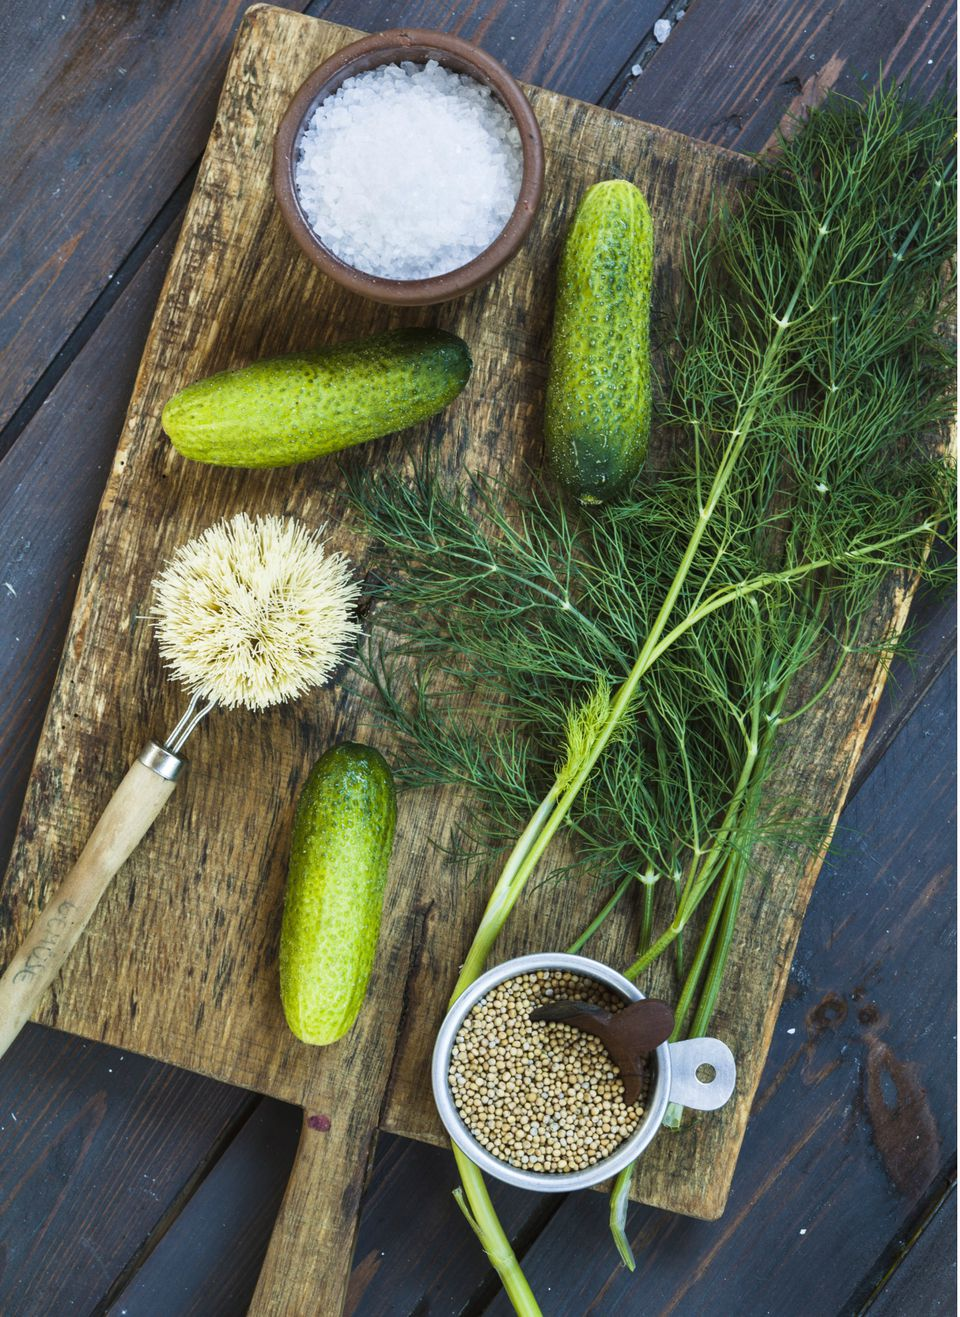 Gherkins, dill, salt and mustard grains